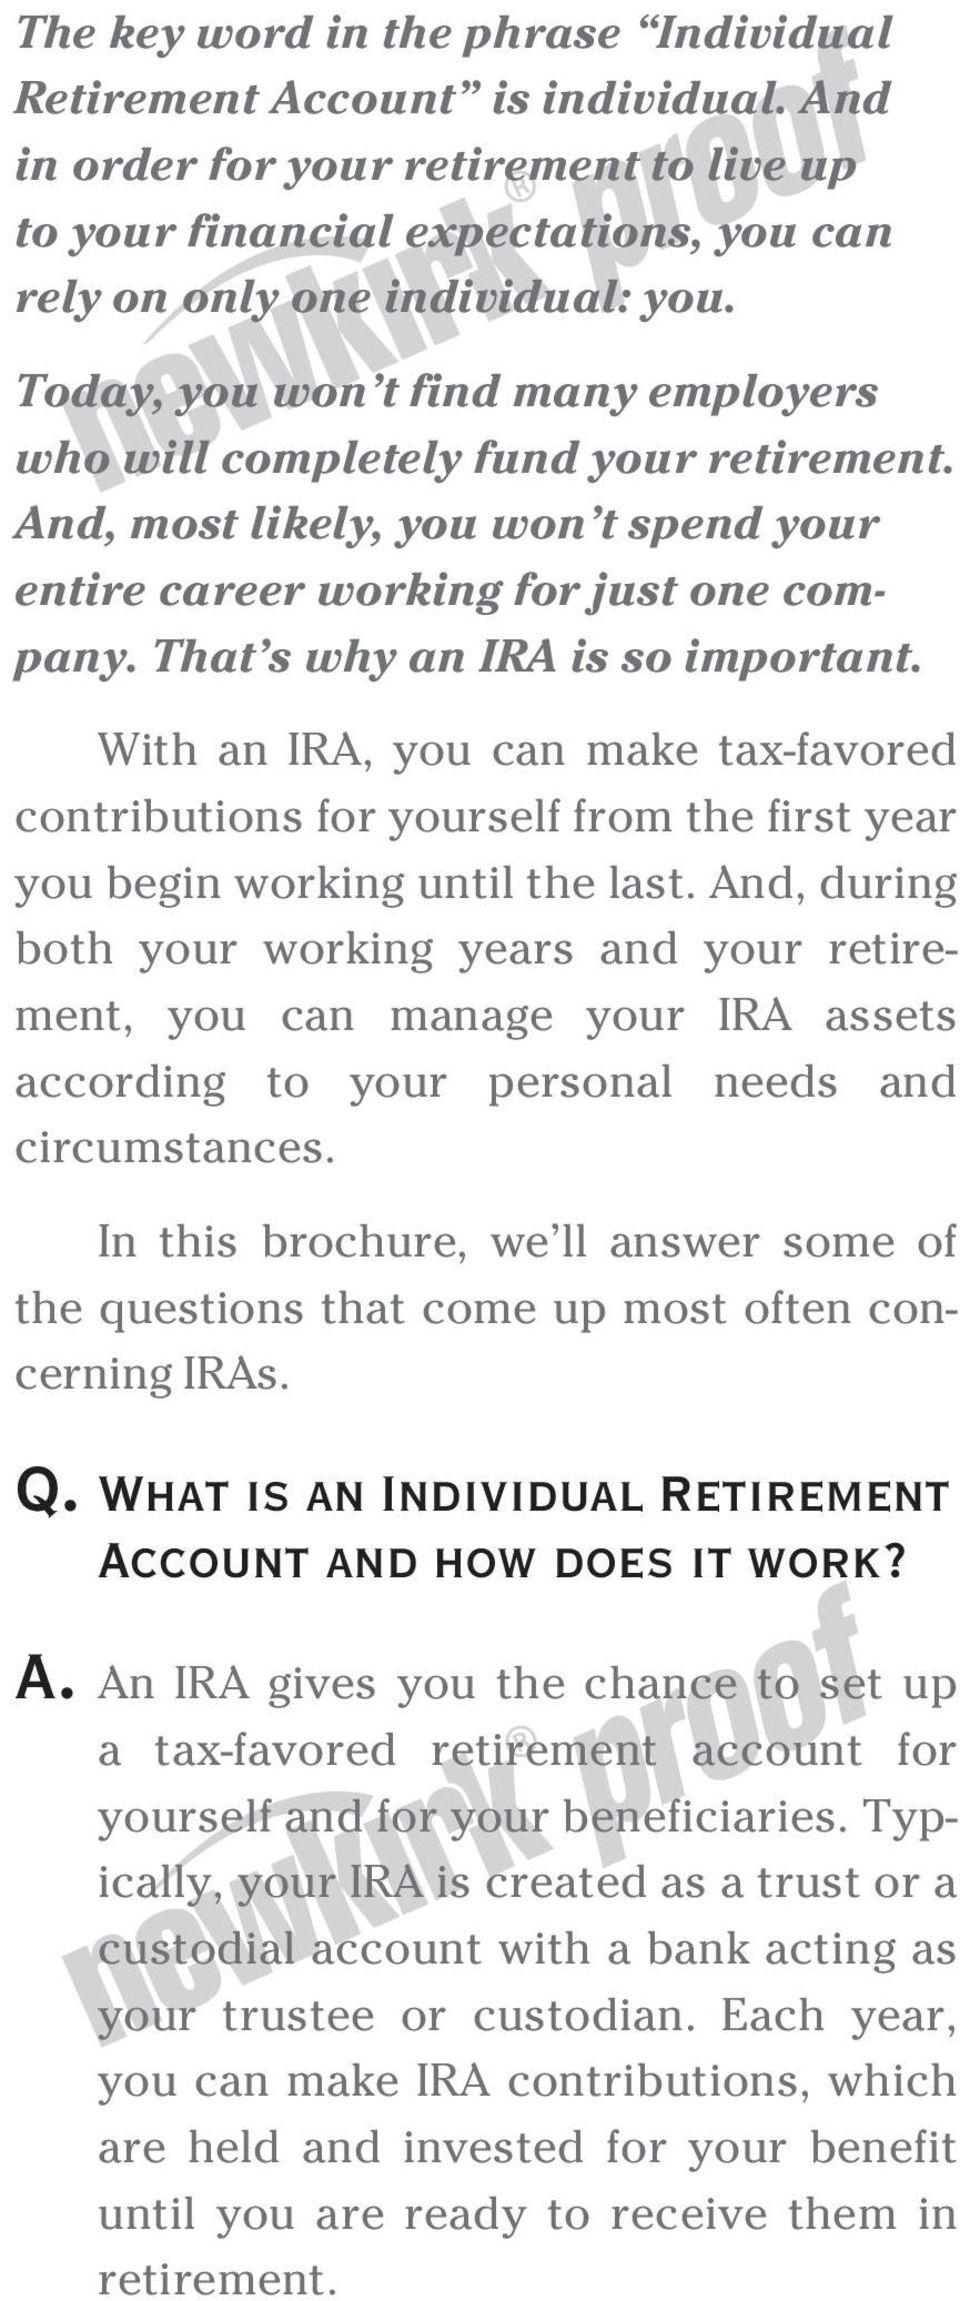 With an IRA, you can make tax-favored contributions for yourself from the first year you begin working until the last.